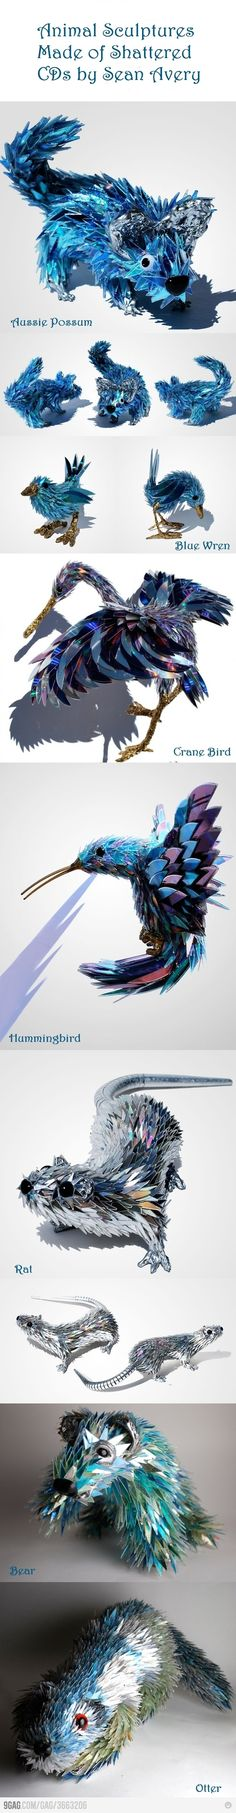 animal sculptures made of CD shards by Sean Avery